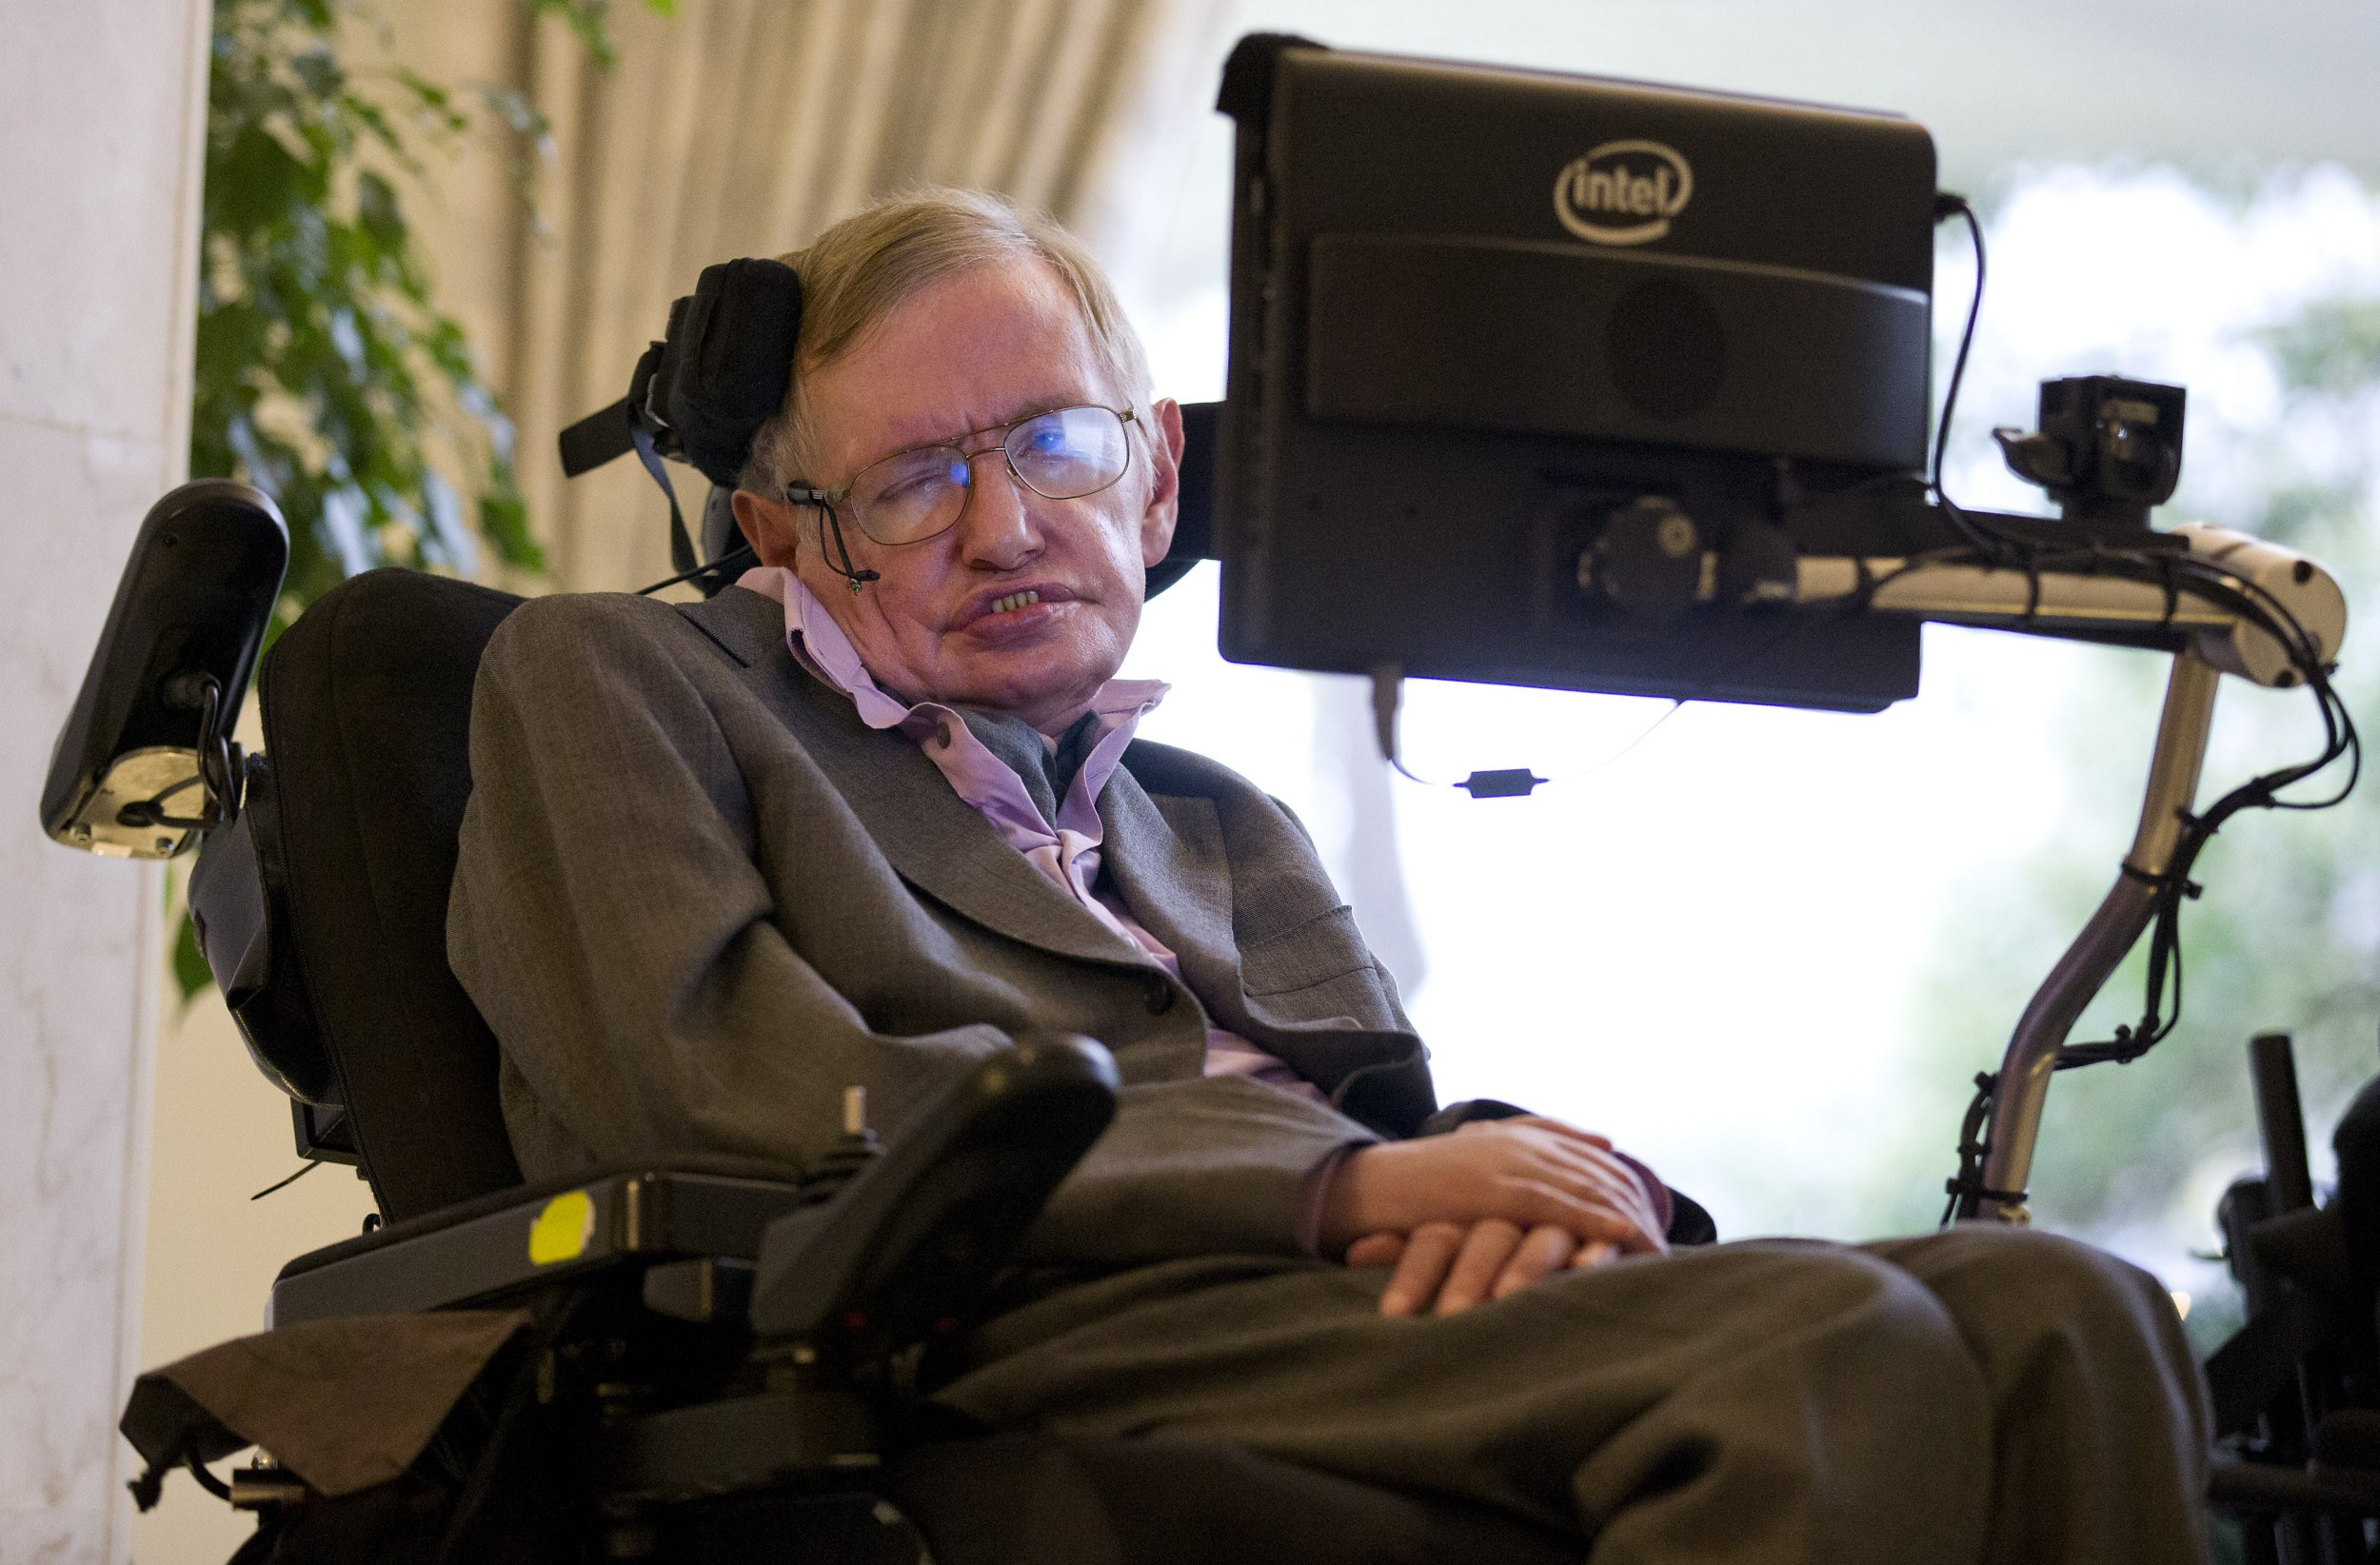 """British theoretical physicist professor Stephen Hawking speaks to members of the media at a press conference in London on December 2, 2014. The system that helps Stephen Hawking communicate with the outside world will be made available online from January in a move that could help millions of motor neurone disease sufferers, scientists said Tuesday. The wheelchair-bound theoretical physicist, who shot to international fame in the 1980s with his book """"A Brief History of Time"""", hailed the decision by US tech giant Intel at a press conference in London. AFP PHOTO / JUSTIN TALLIS (Photo credit should read JUSTIN TALLIS/AFP/Getty Images)"""